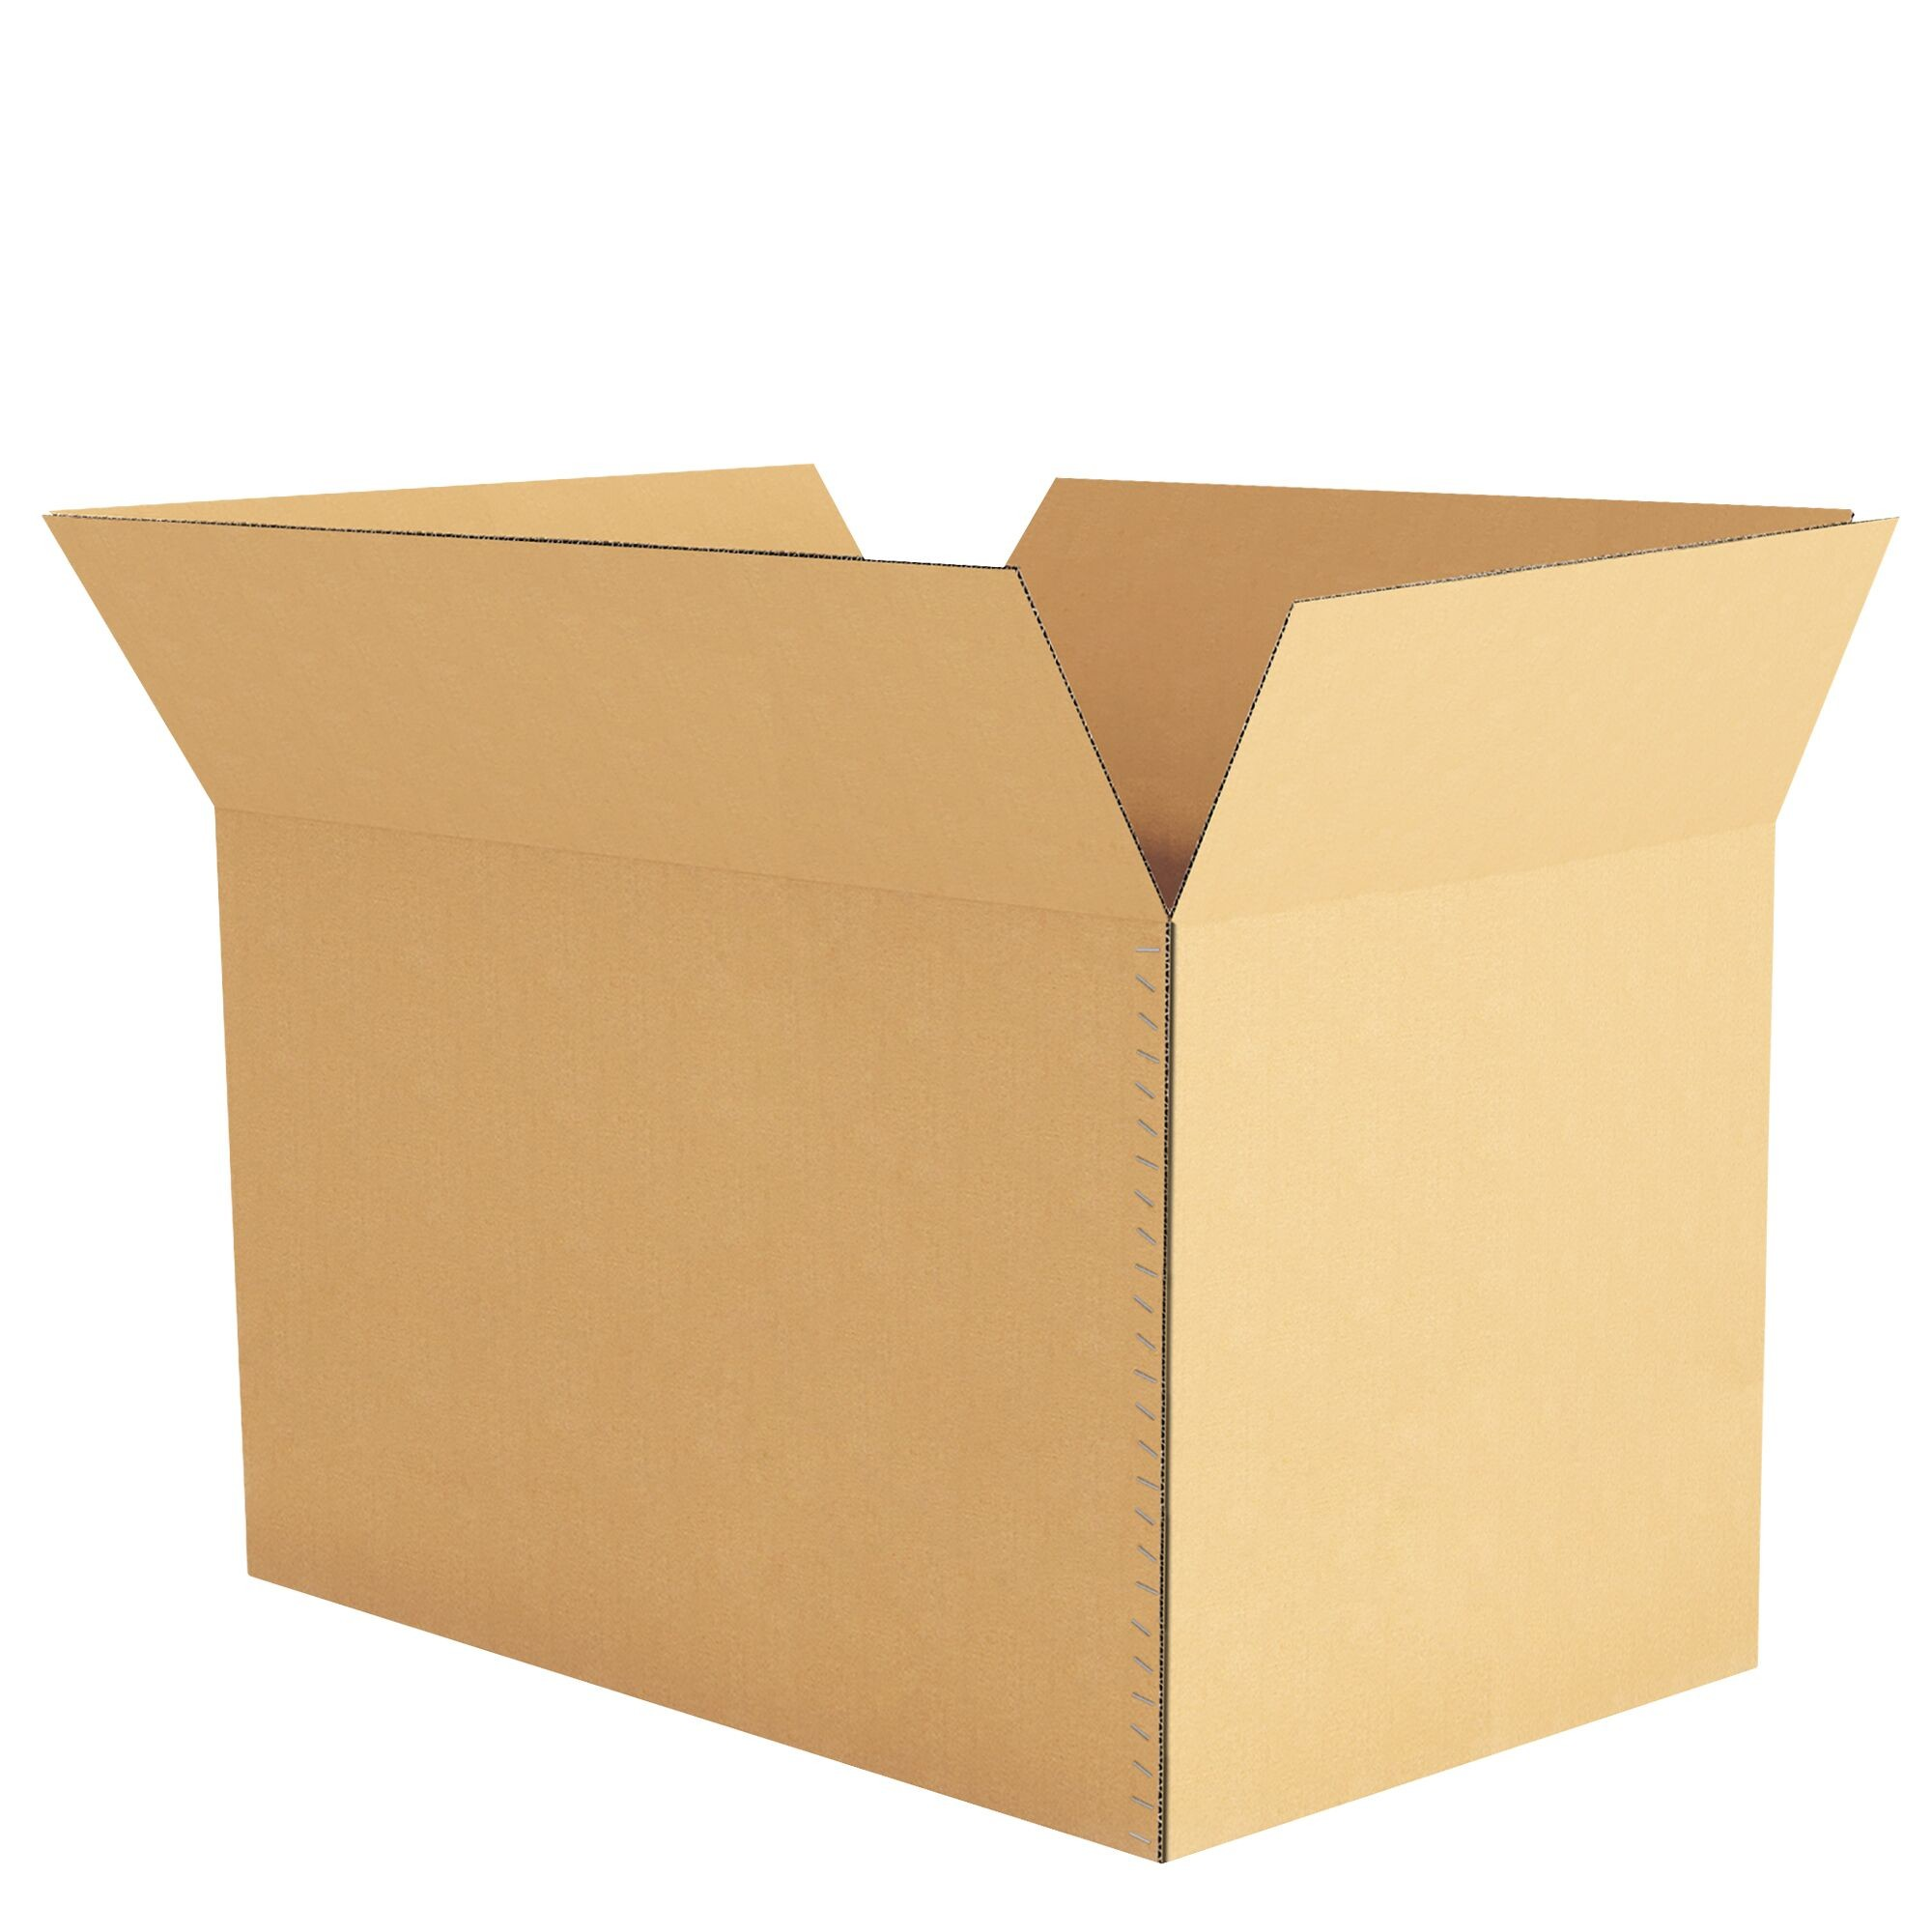 """TOTALPACK® 42 x 29 x 25.5"""" Double Wall E Container Corrugated Box 5 Unit"""